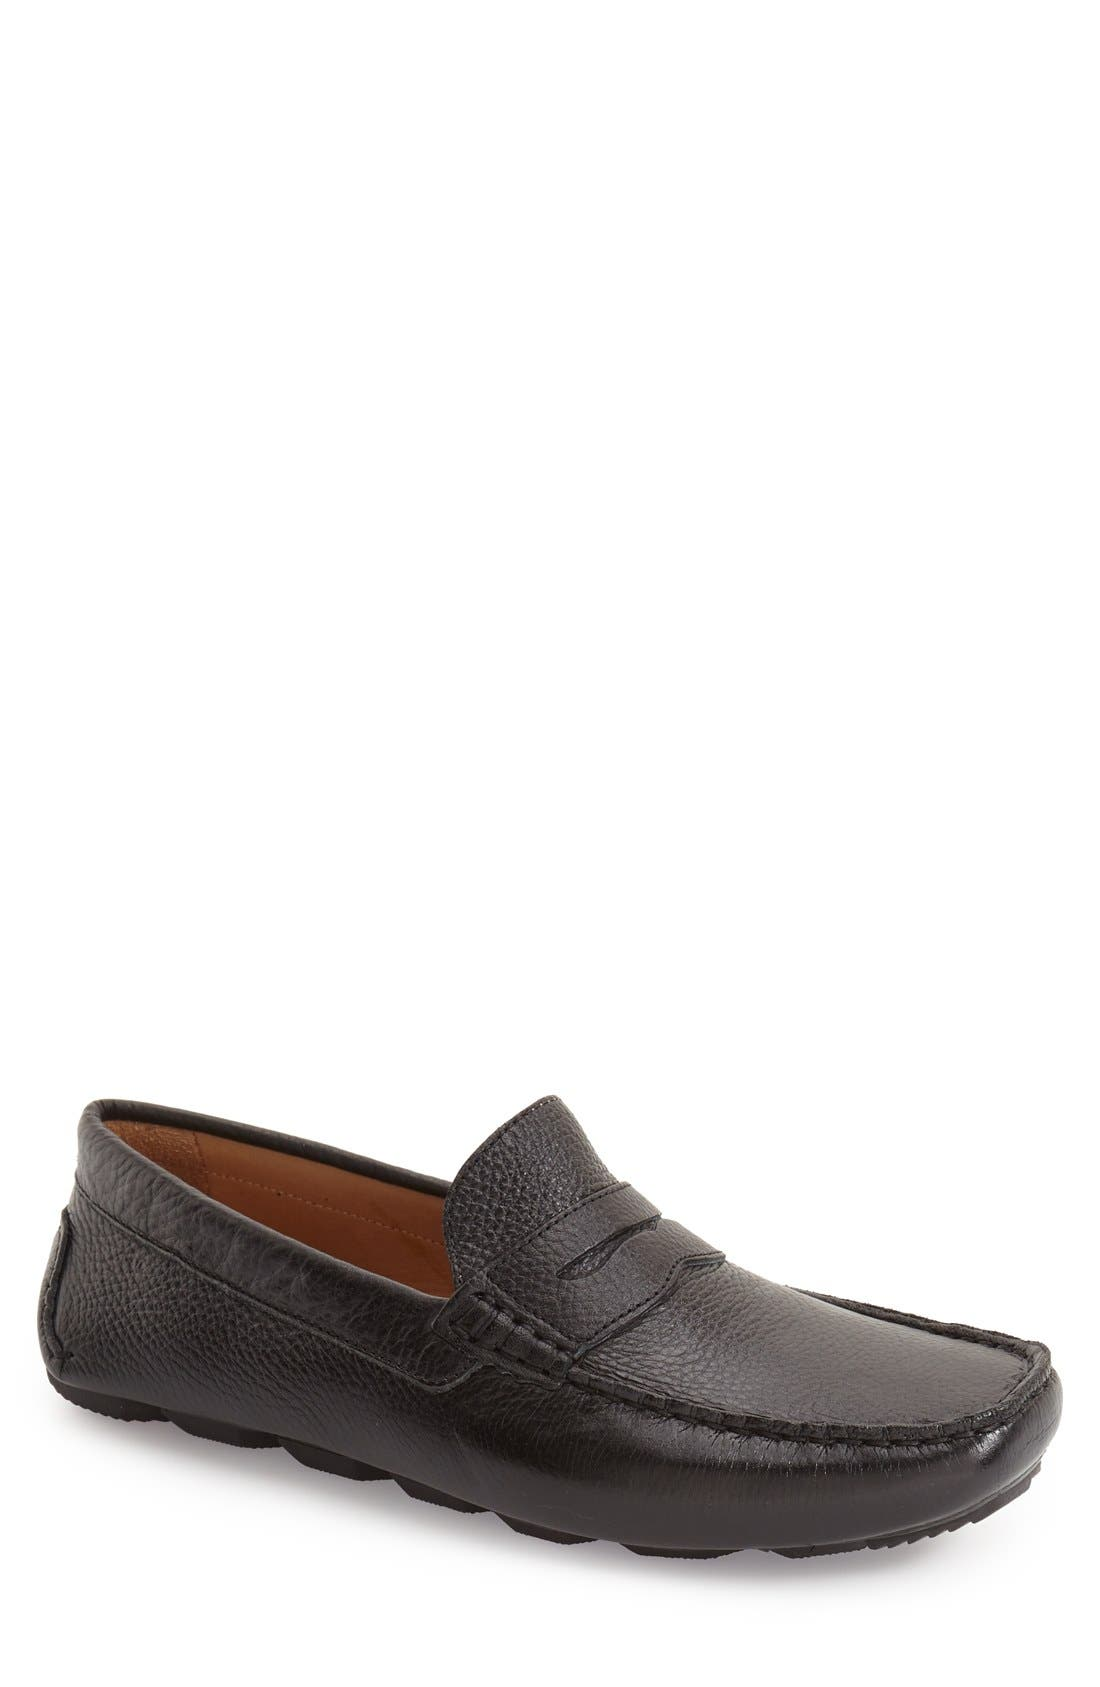 'Bermuda' Penny Loafer,                         Main,                         color, Black Leather